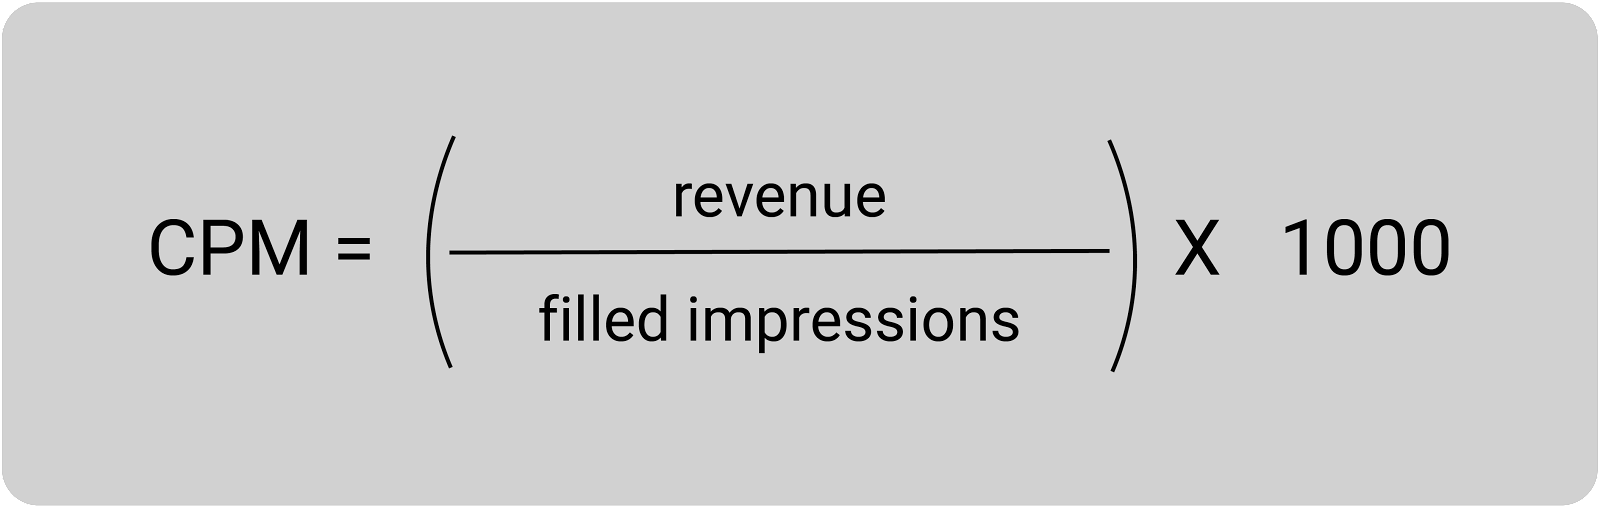 cpm equals revenue divided by filled impression times 1000